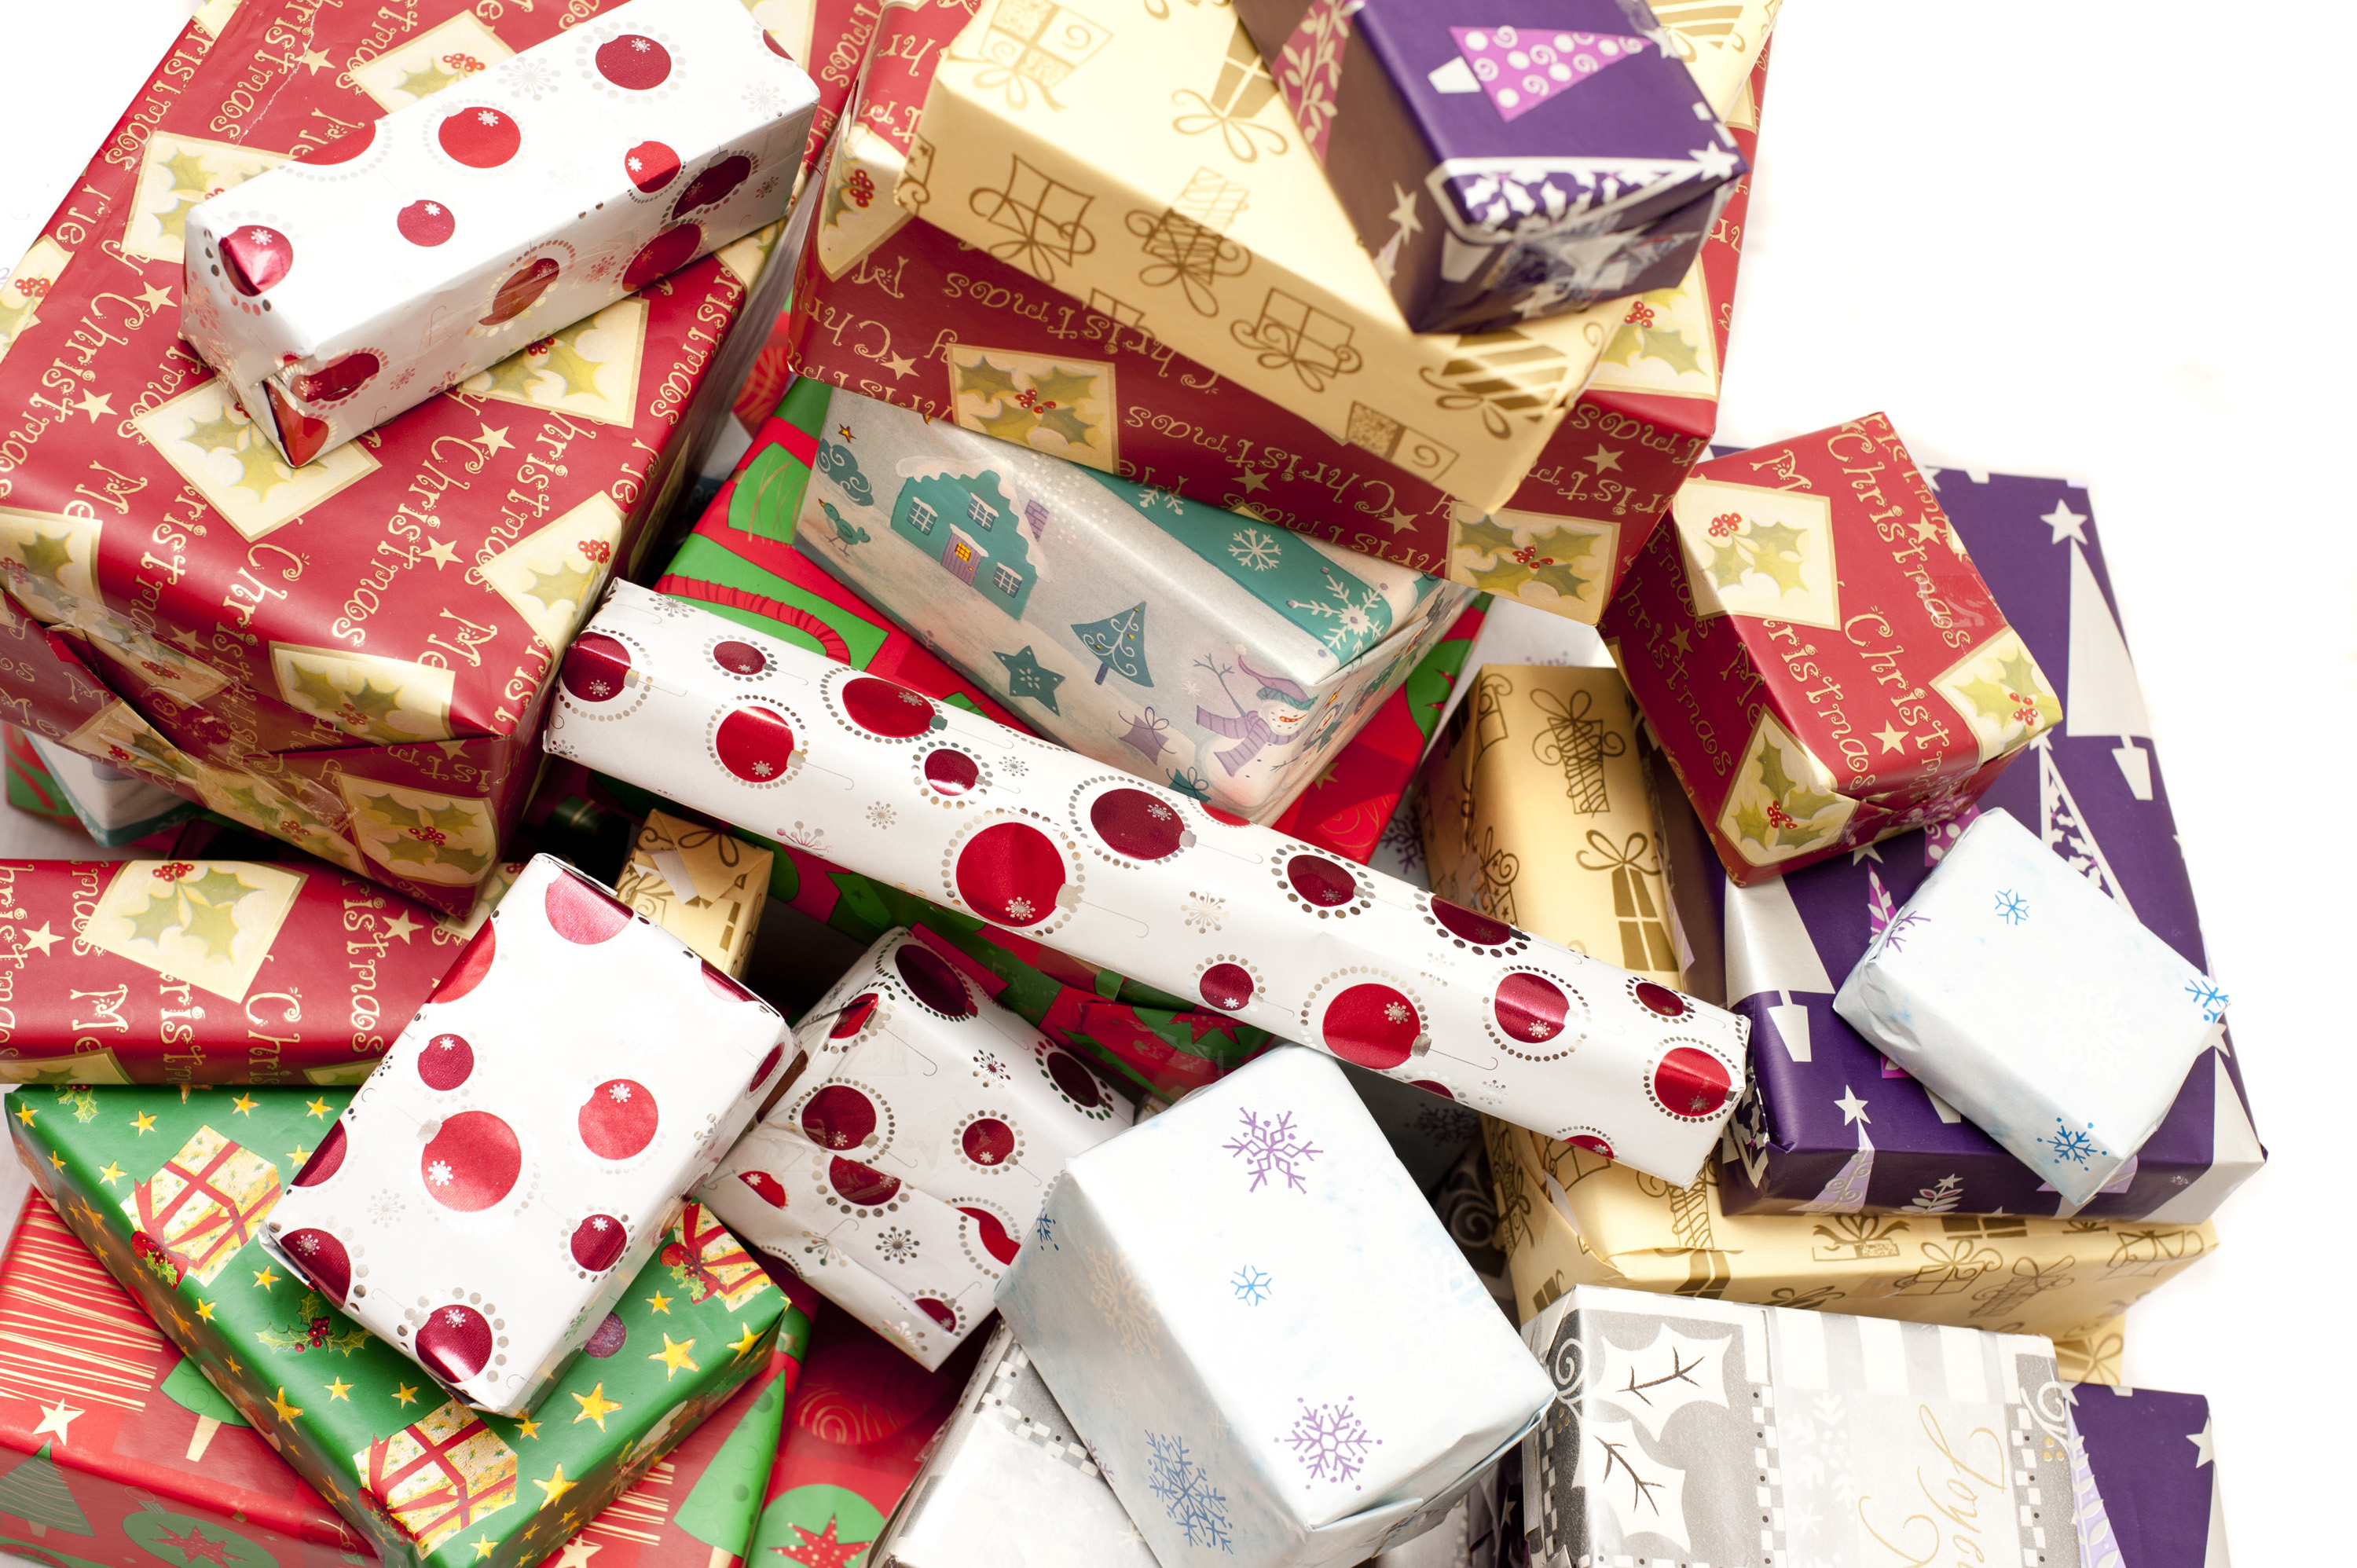 christmas gifts background paper piled colorful presents pile wrapped decorative patterned creative commons heap seasonal boxes christmasstockimages